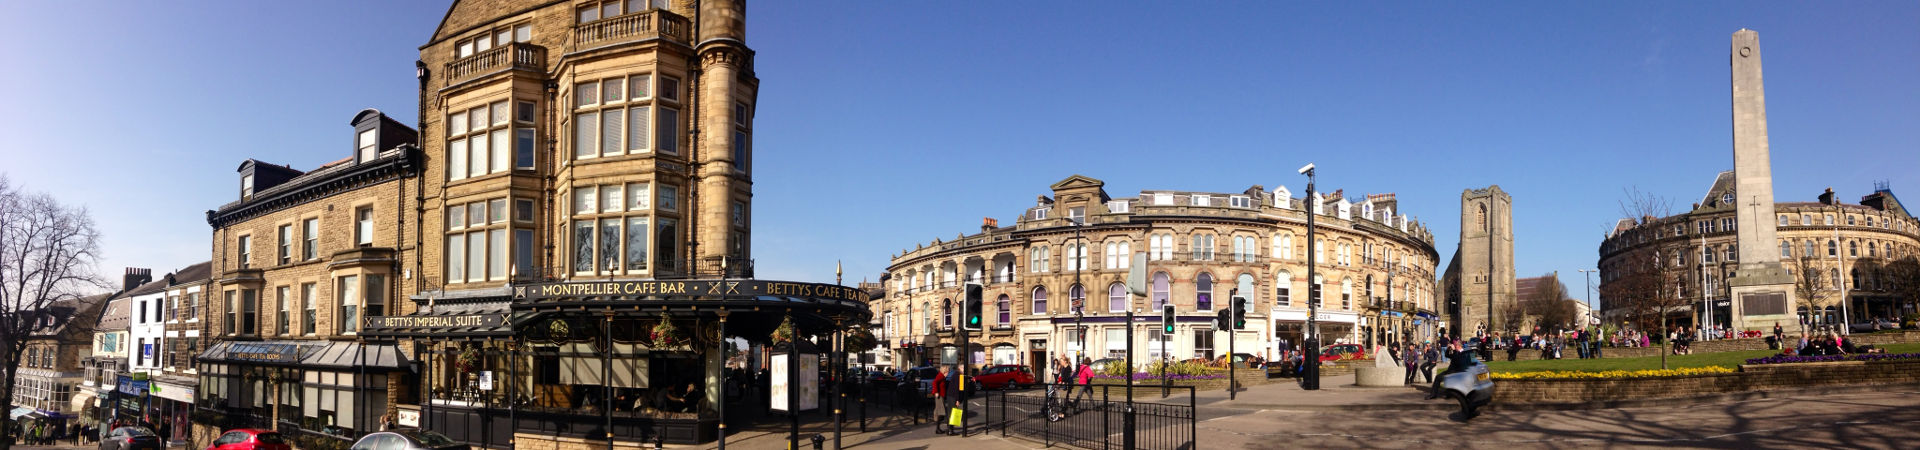 Panorama of Harrogate